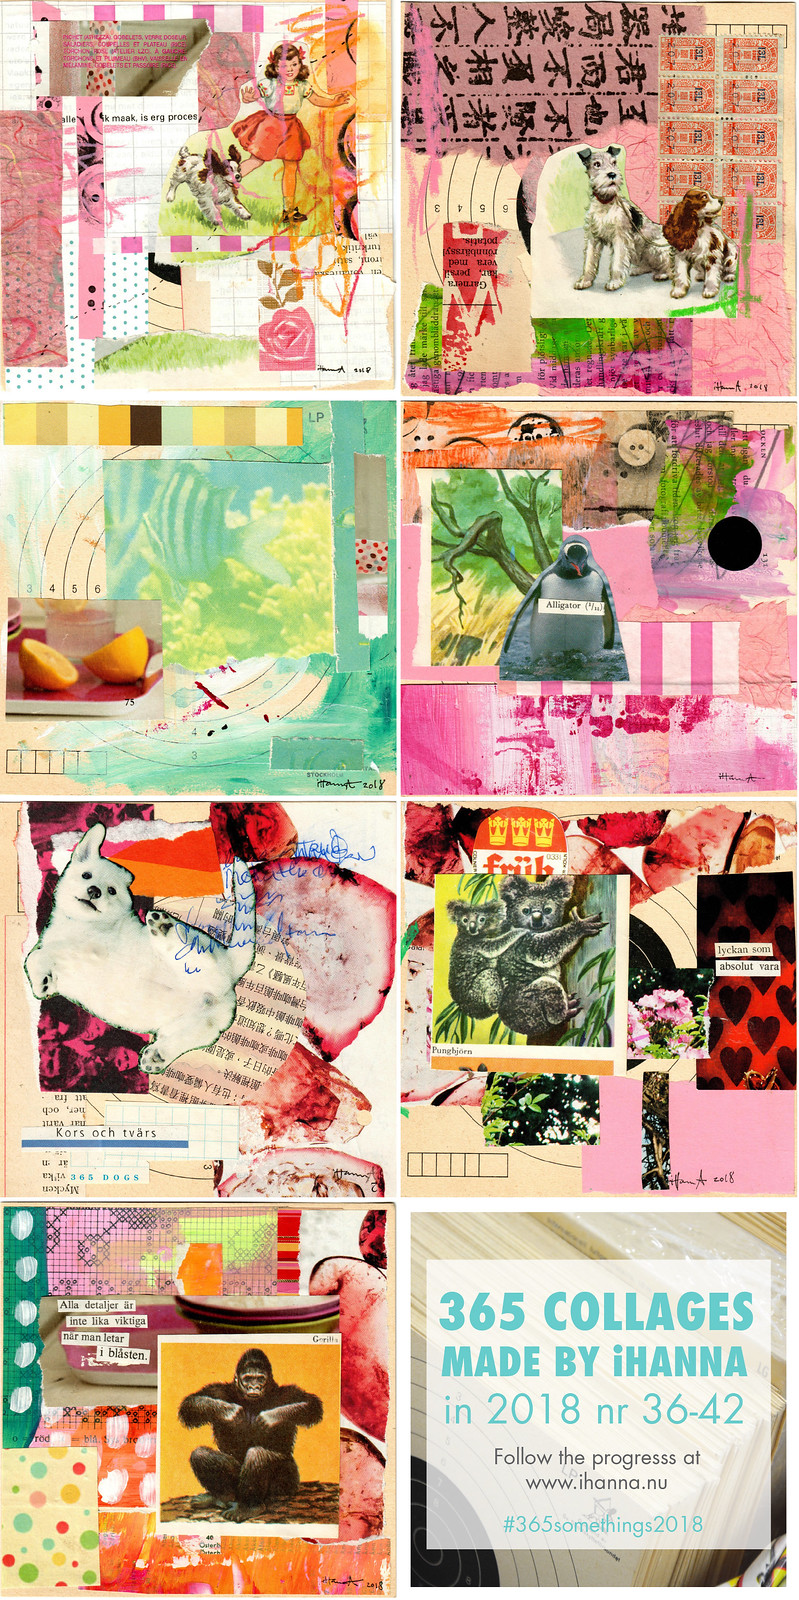 iHanna's 365 Collages in 2018, week 6 themed  Animal Friends - by iHanna #365somethings2018 #collage